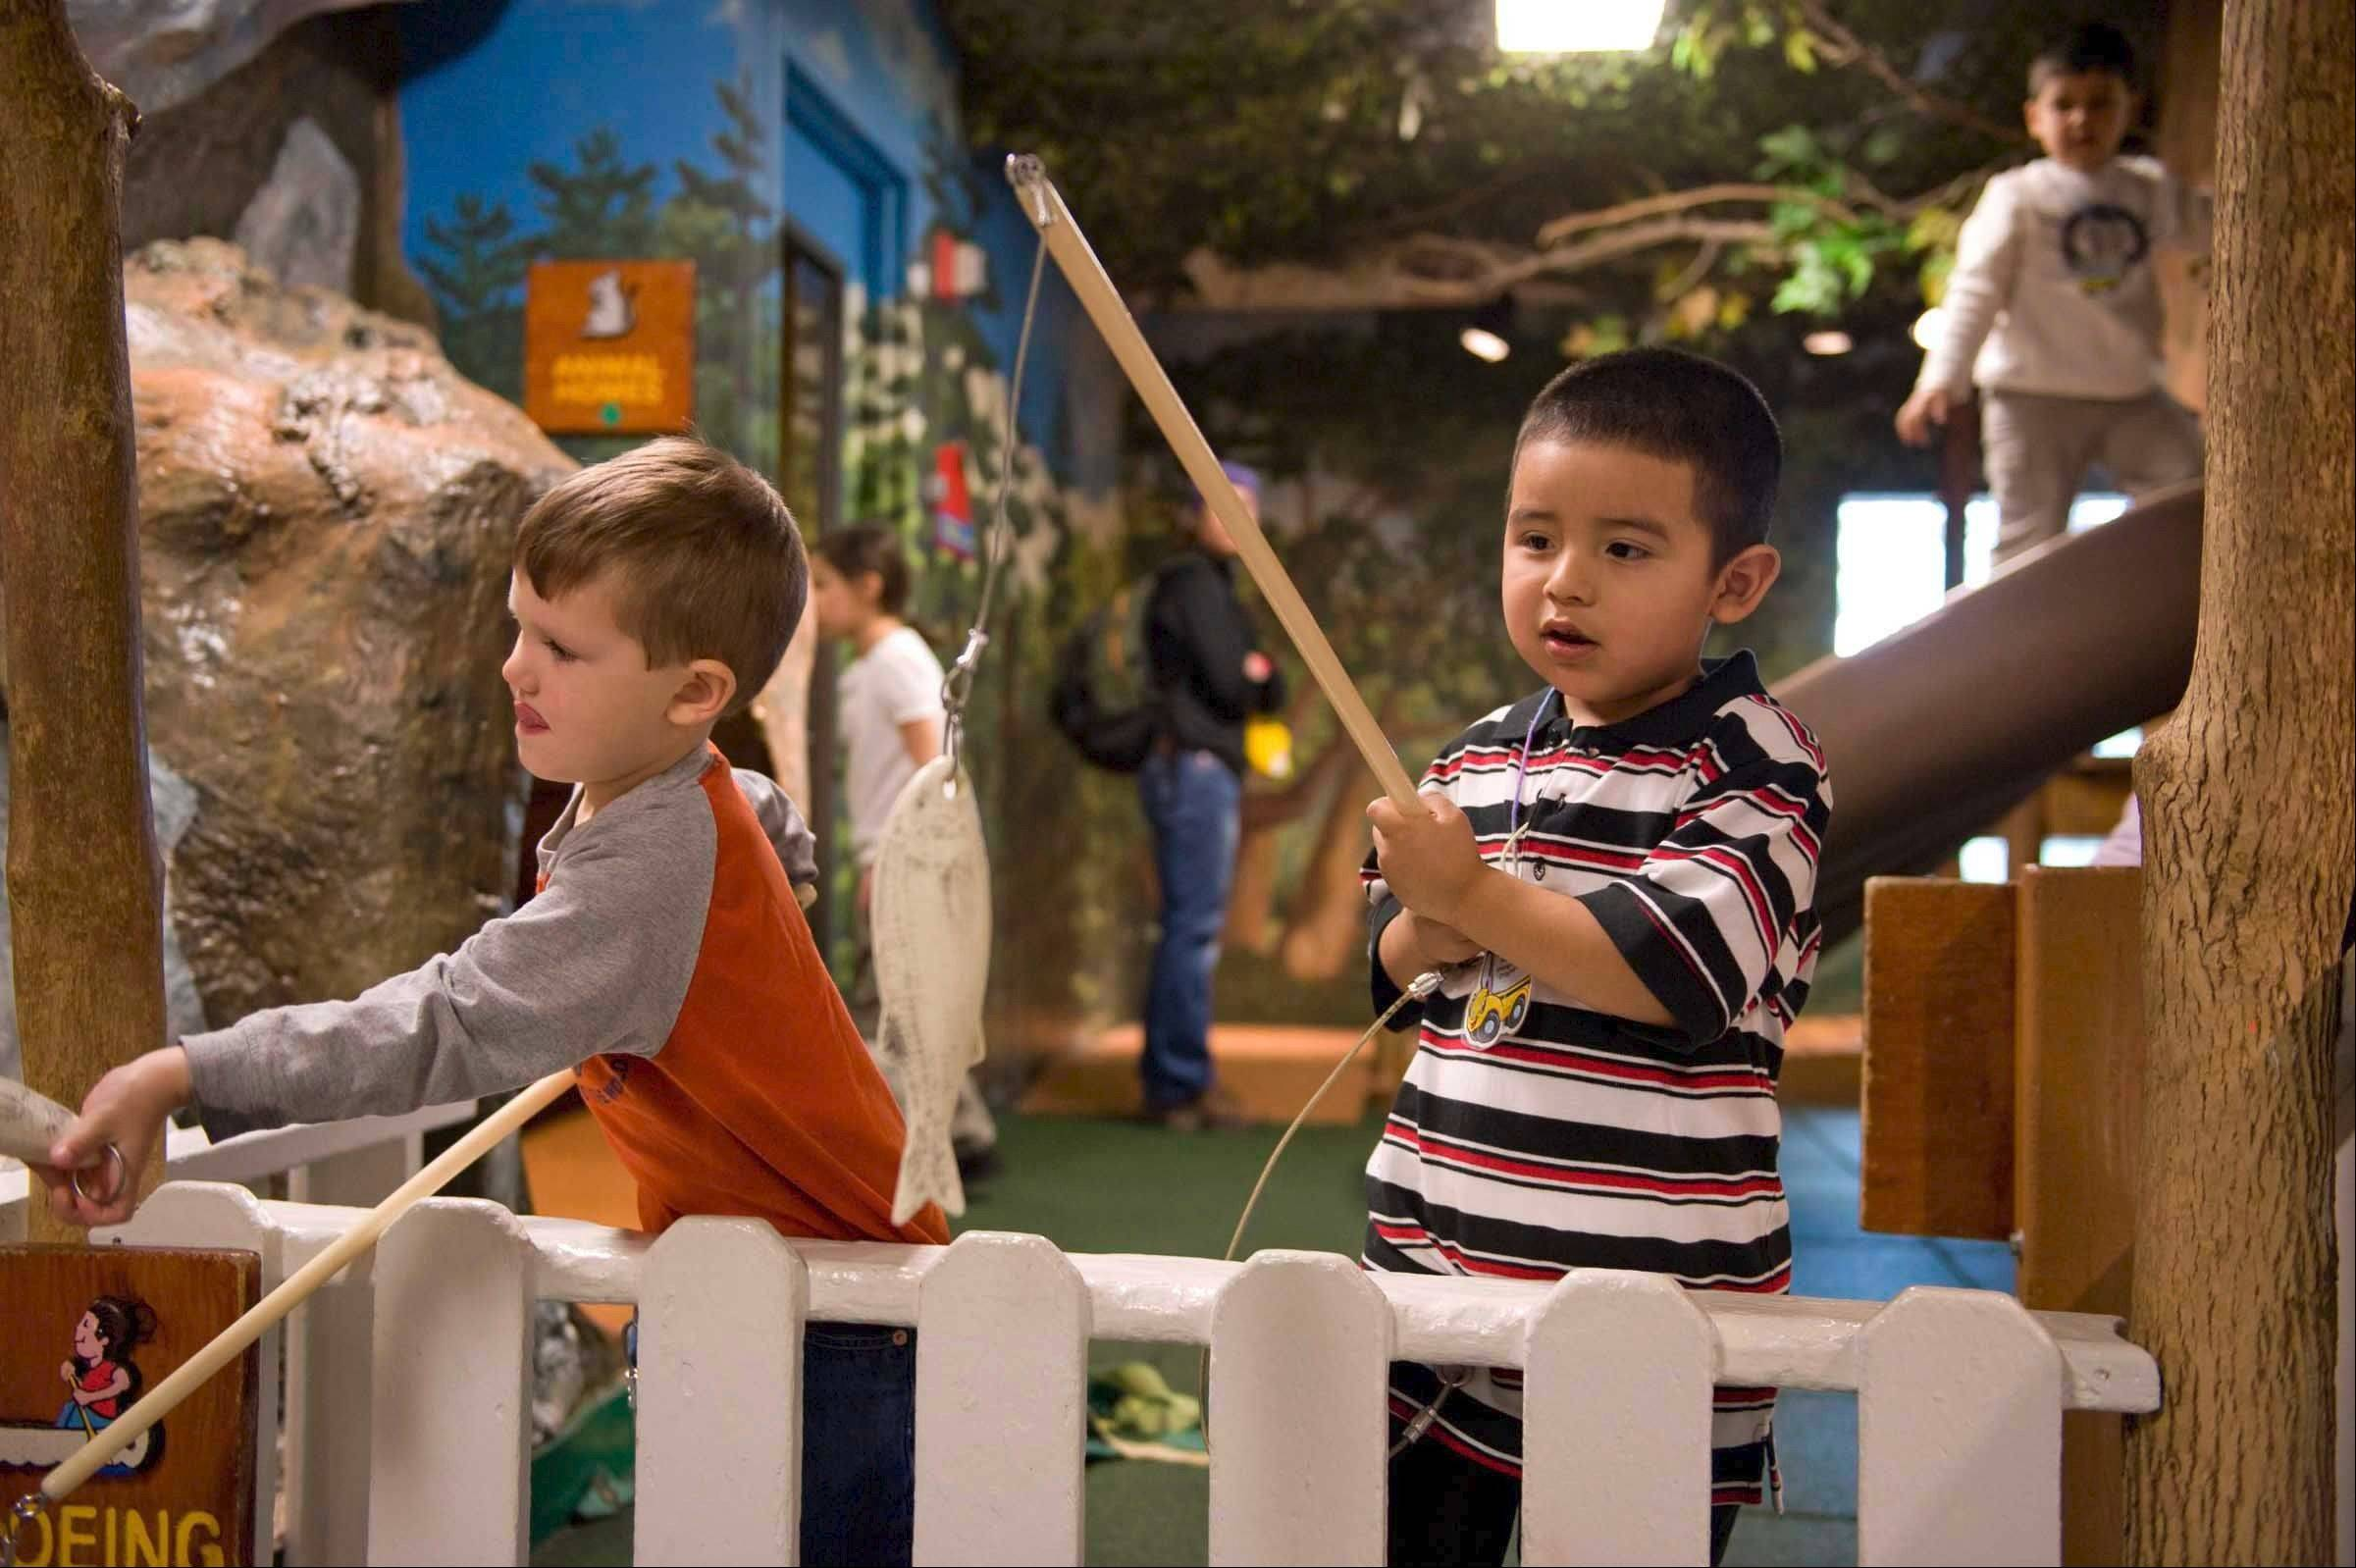 Hands-on activities will keep kids playing for hours at the Chicago Children's Museum at Navy Pier.